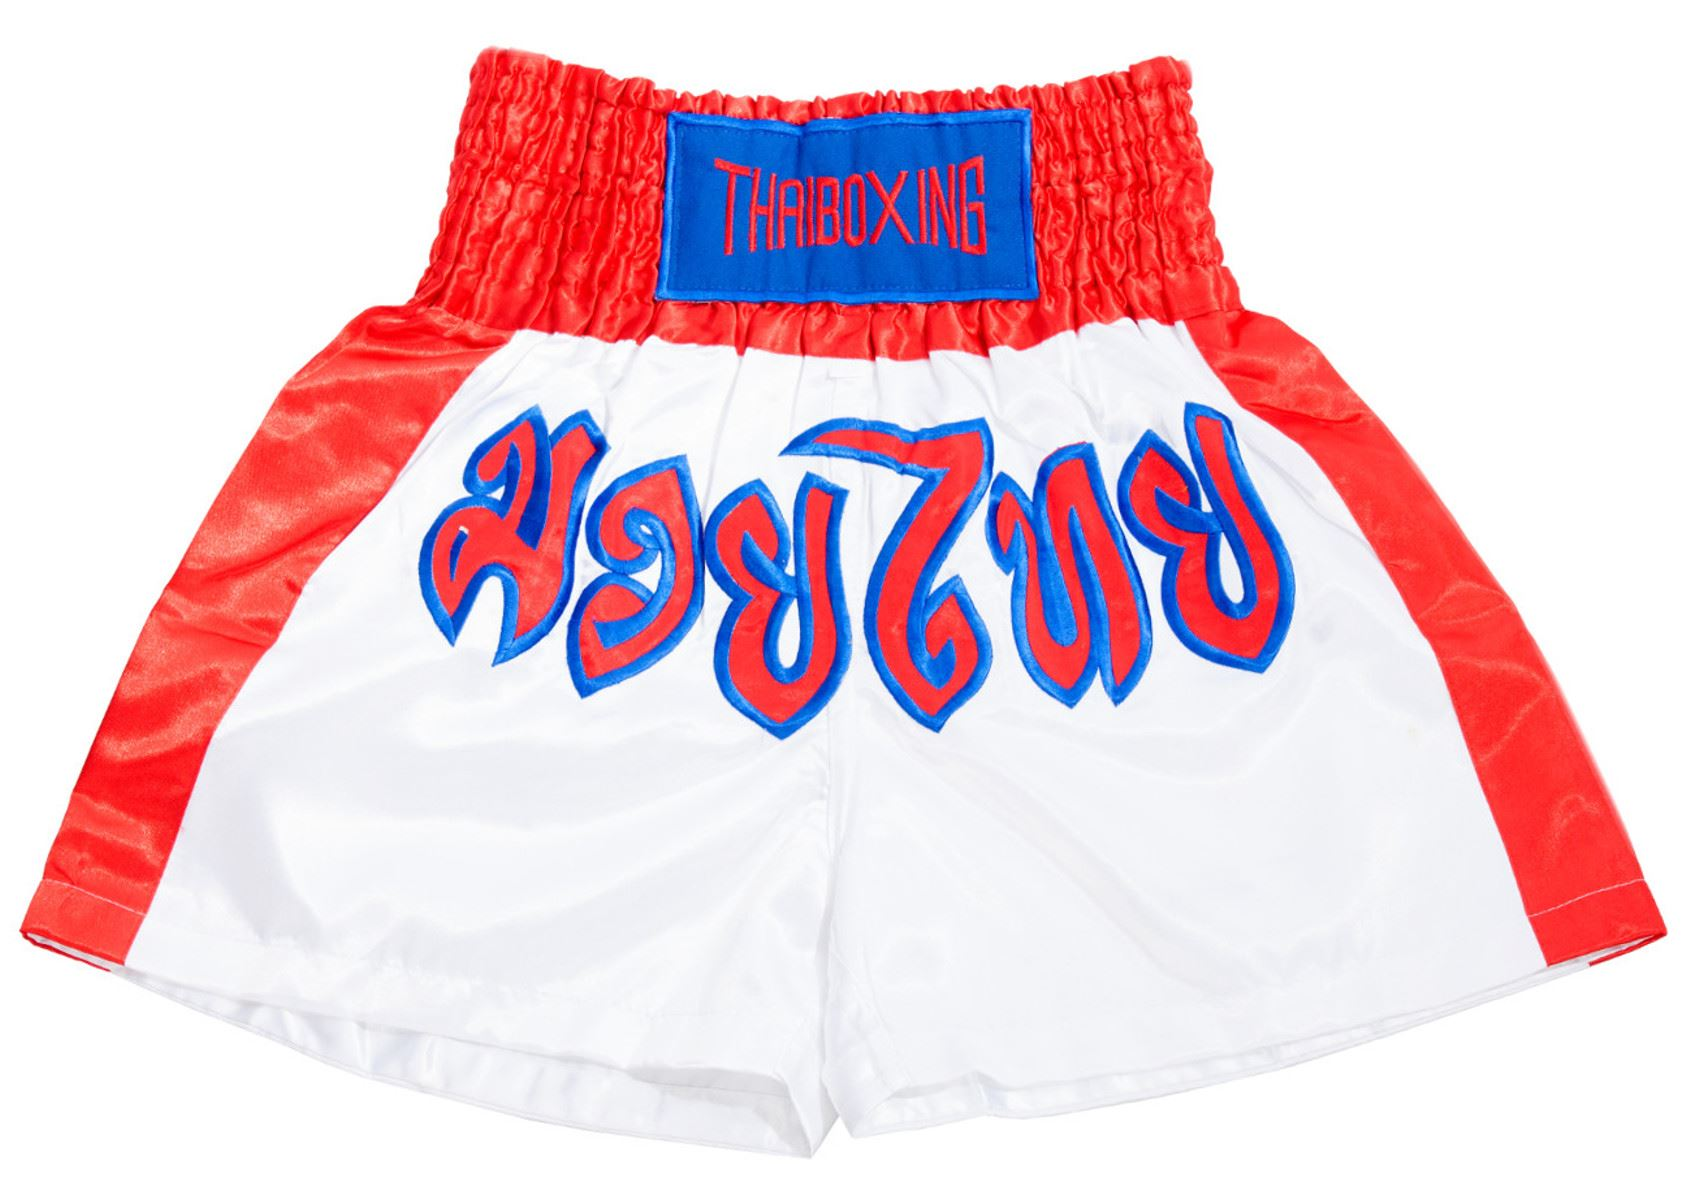 lofbaz kinder muay thai boxershorts kickboxen sportshorts. Black Bedroom Furniture Sets. Home Design Ideas